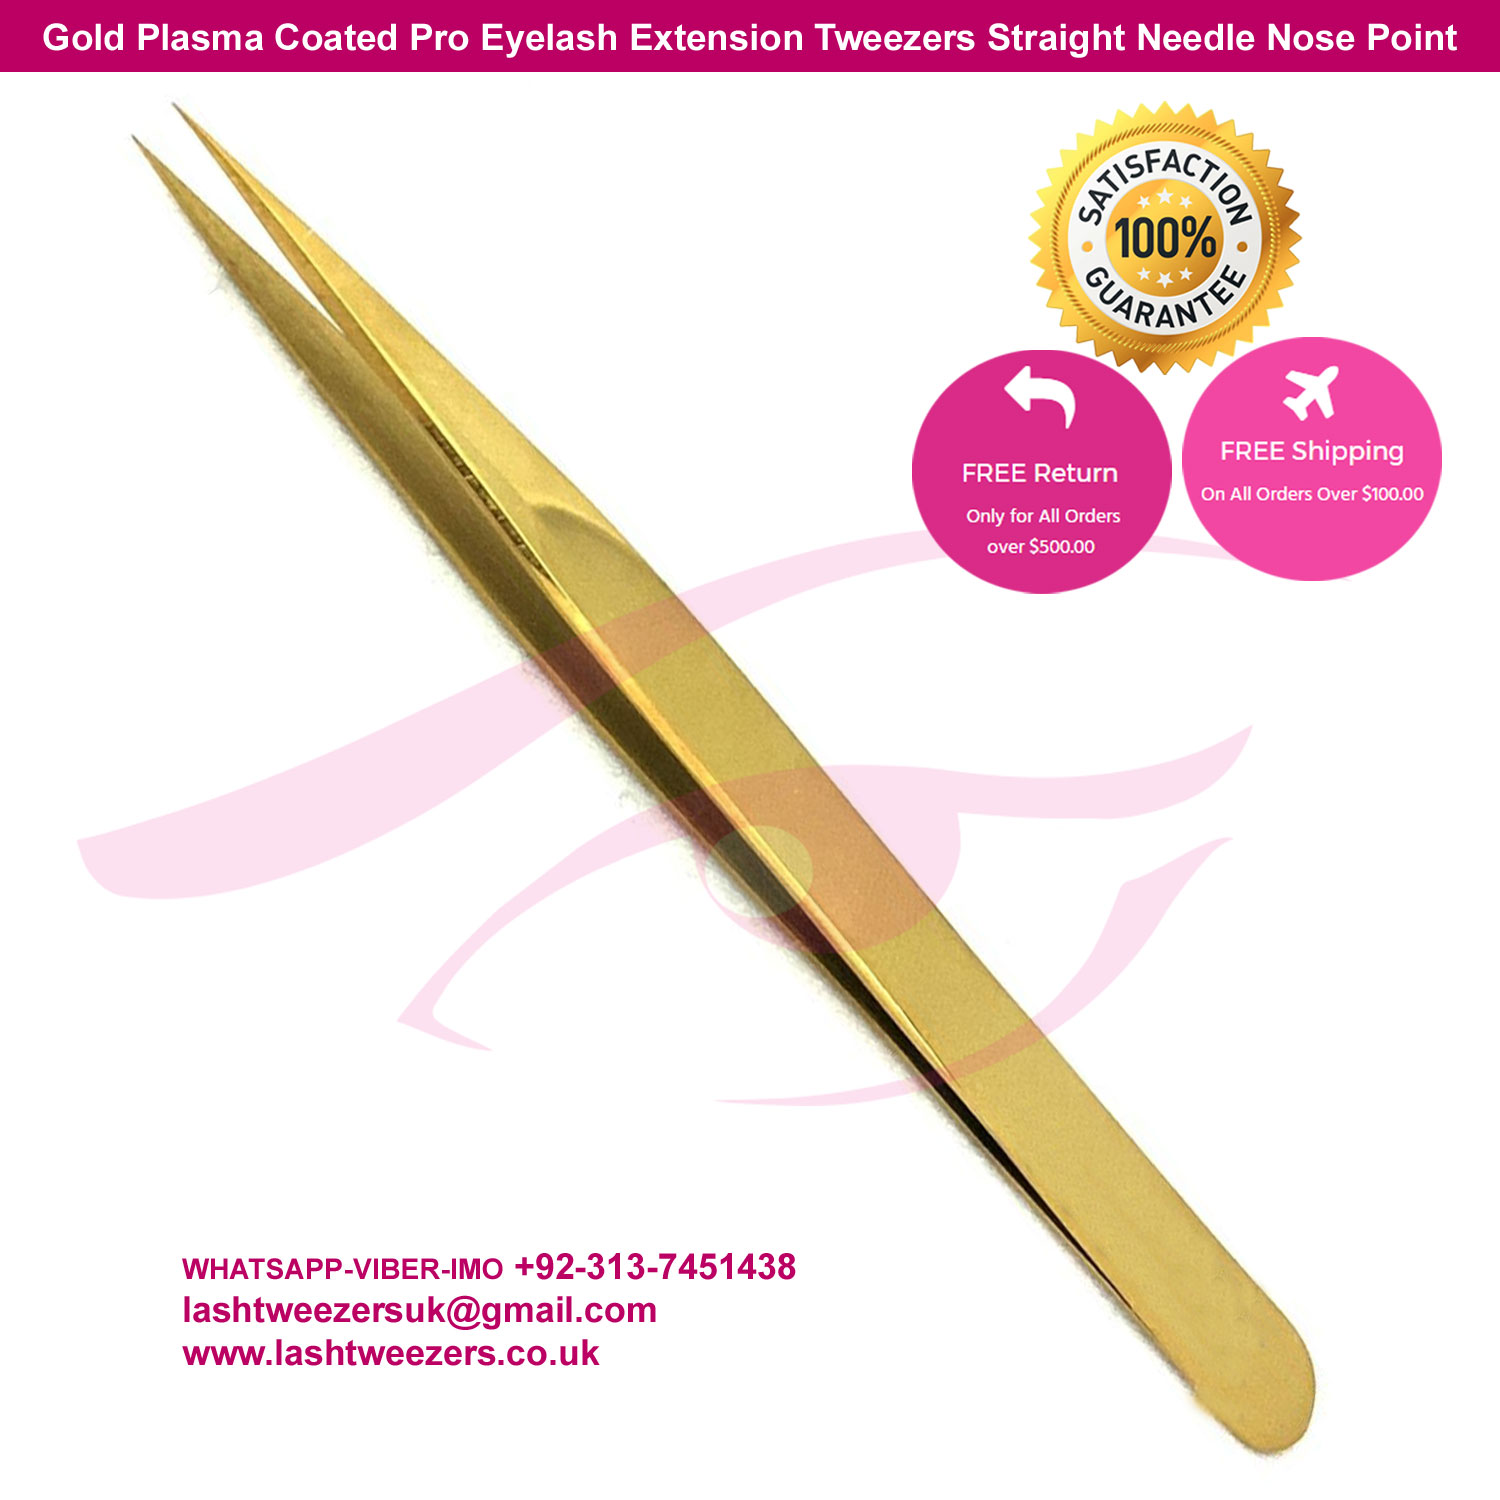 Gold Plasma Coated Pro Eyelash Extension Tweezers Straight Needle Nose Point